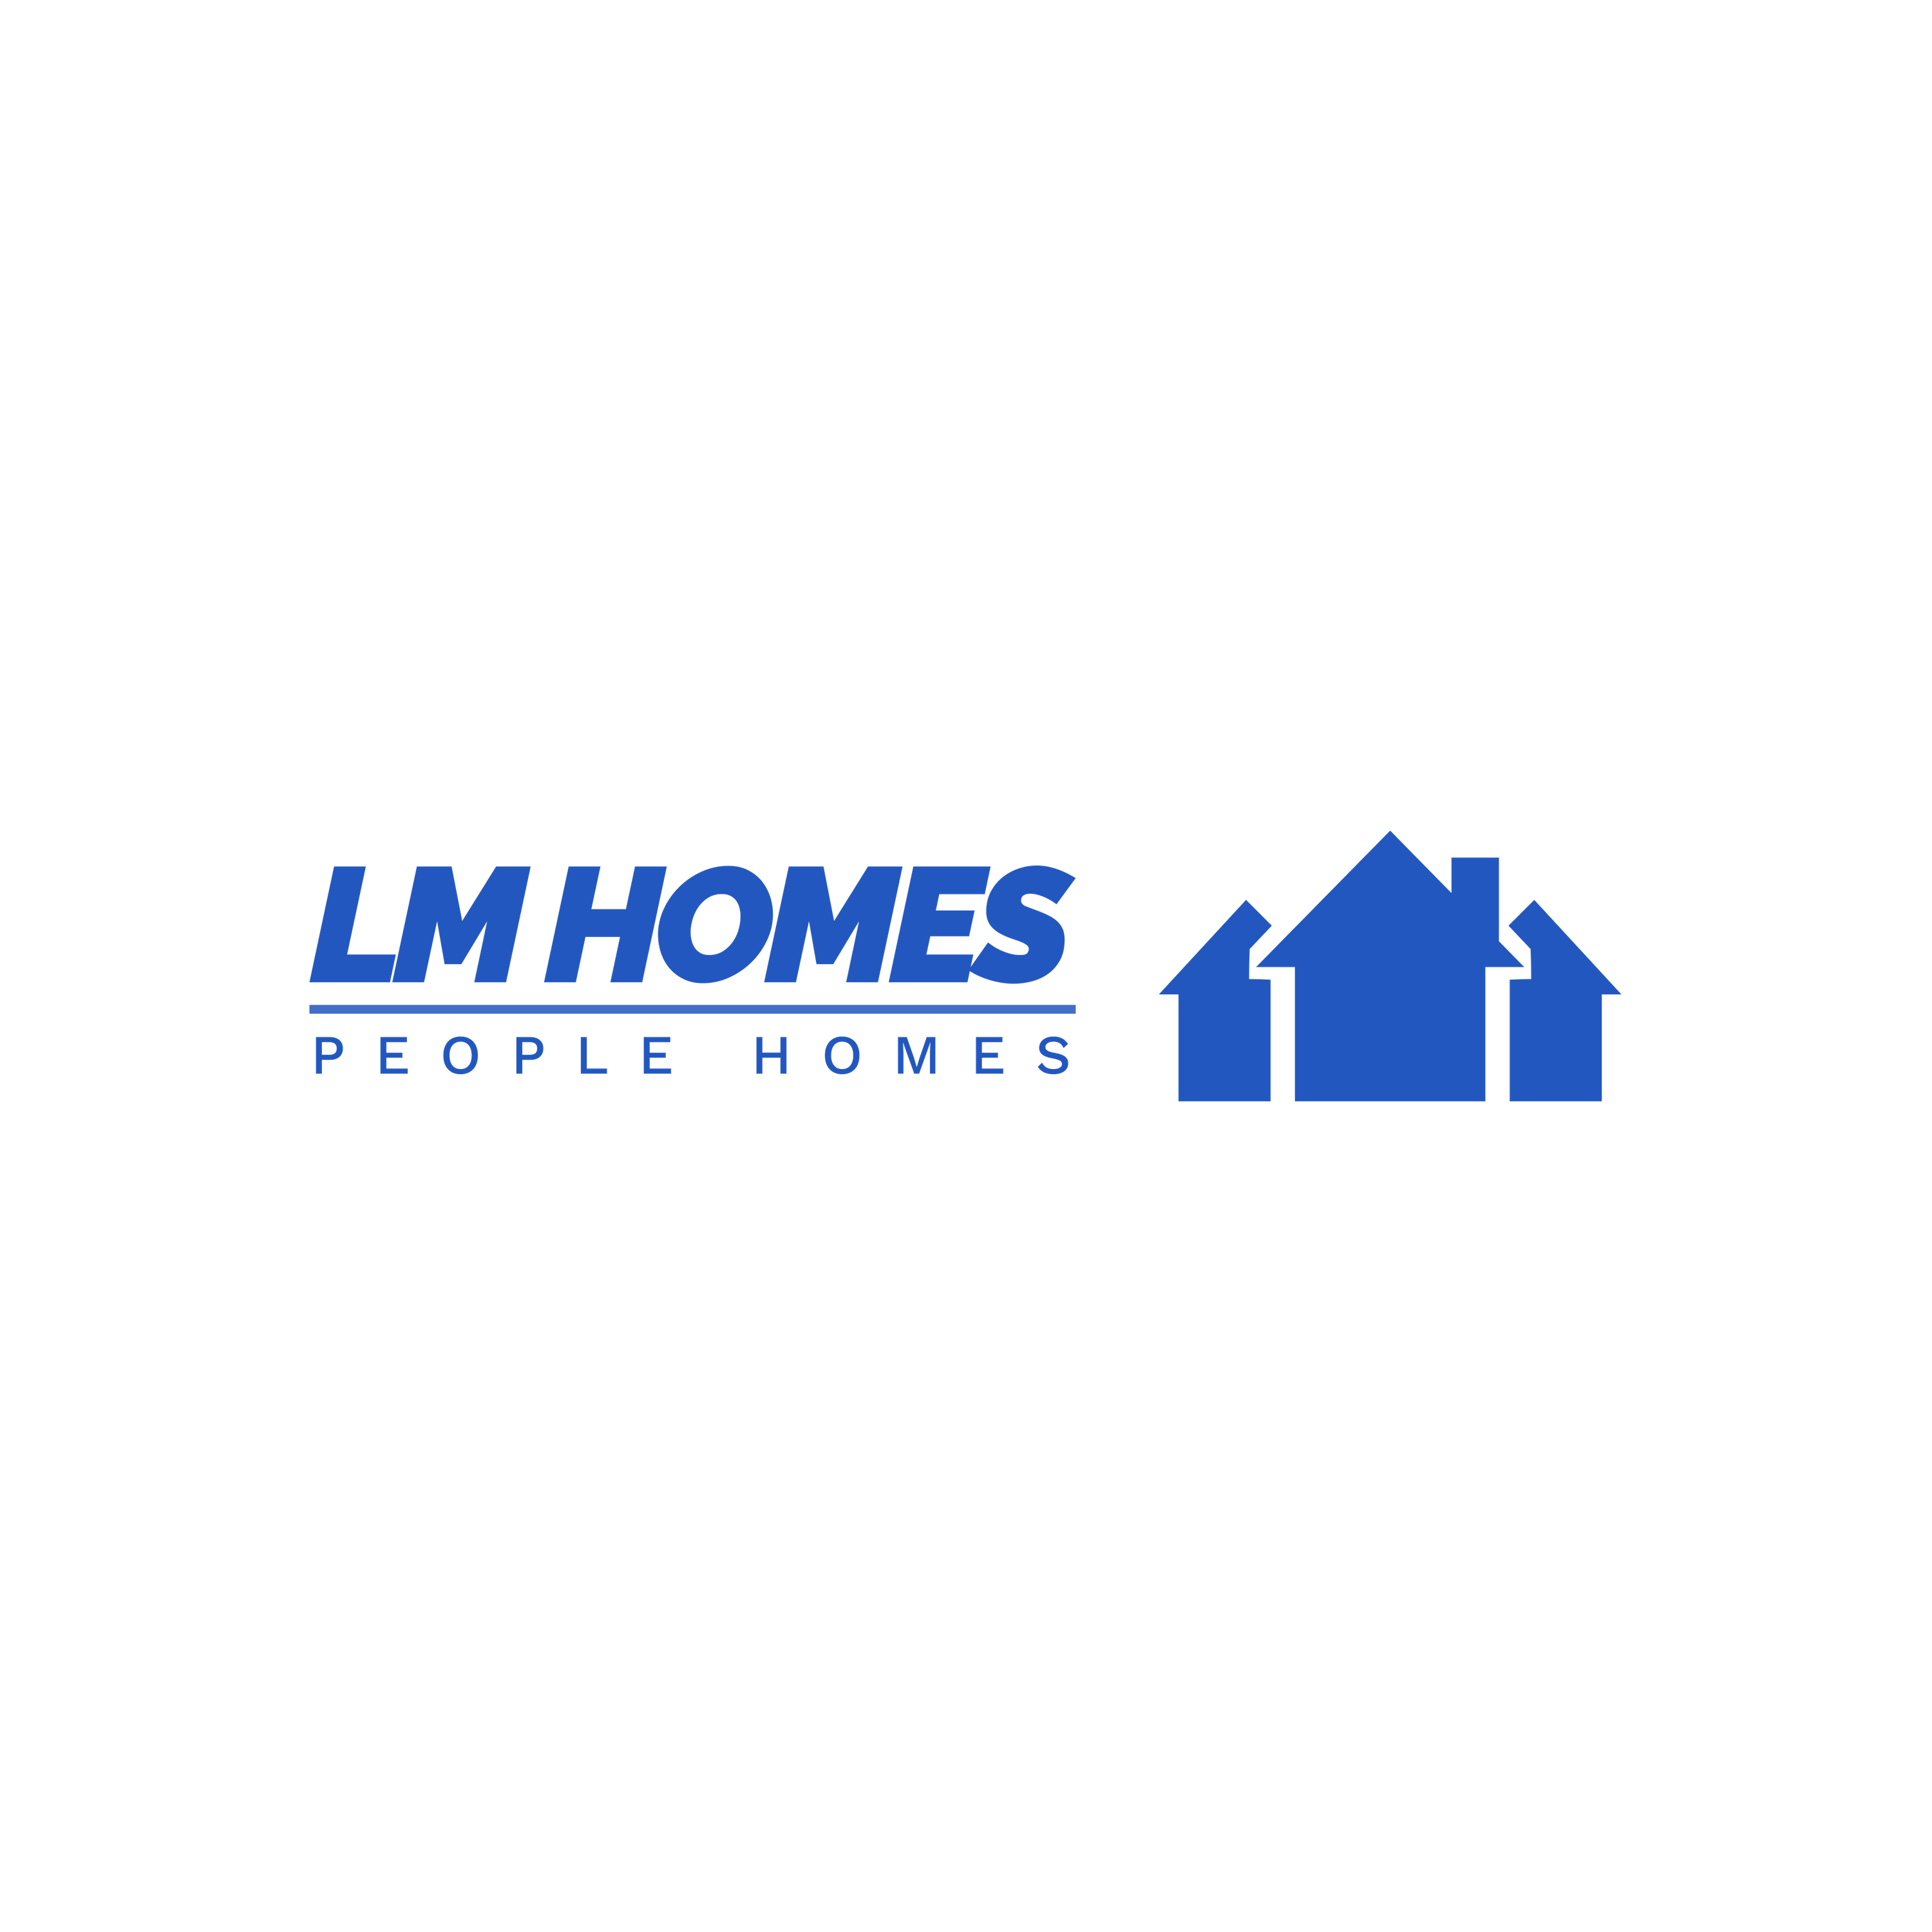 LM Homes